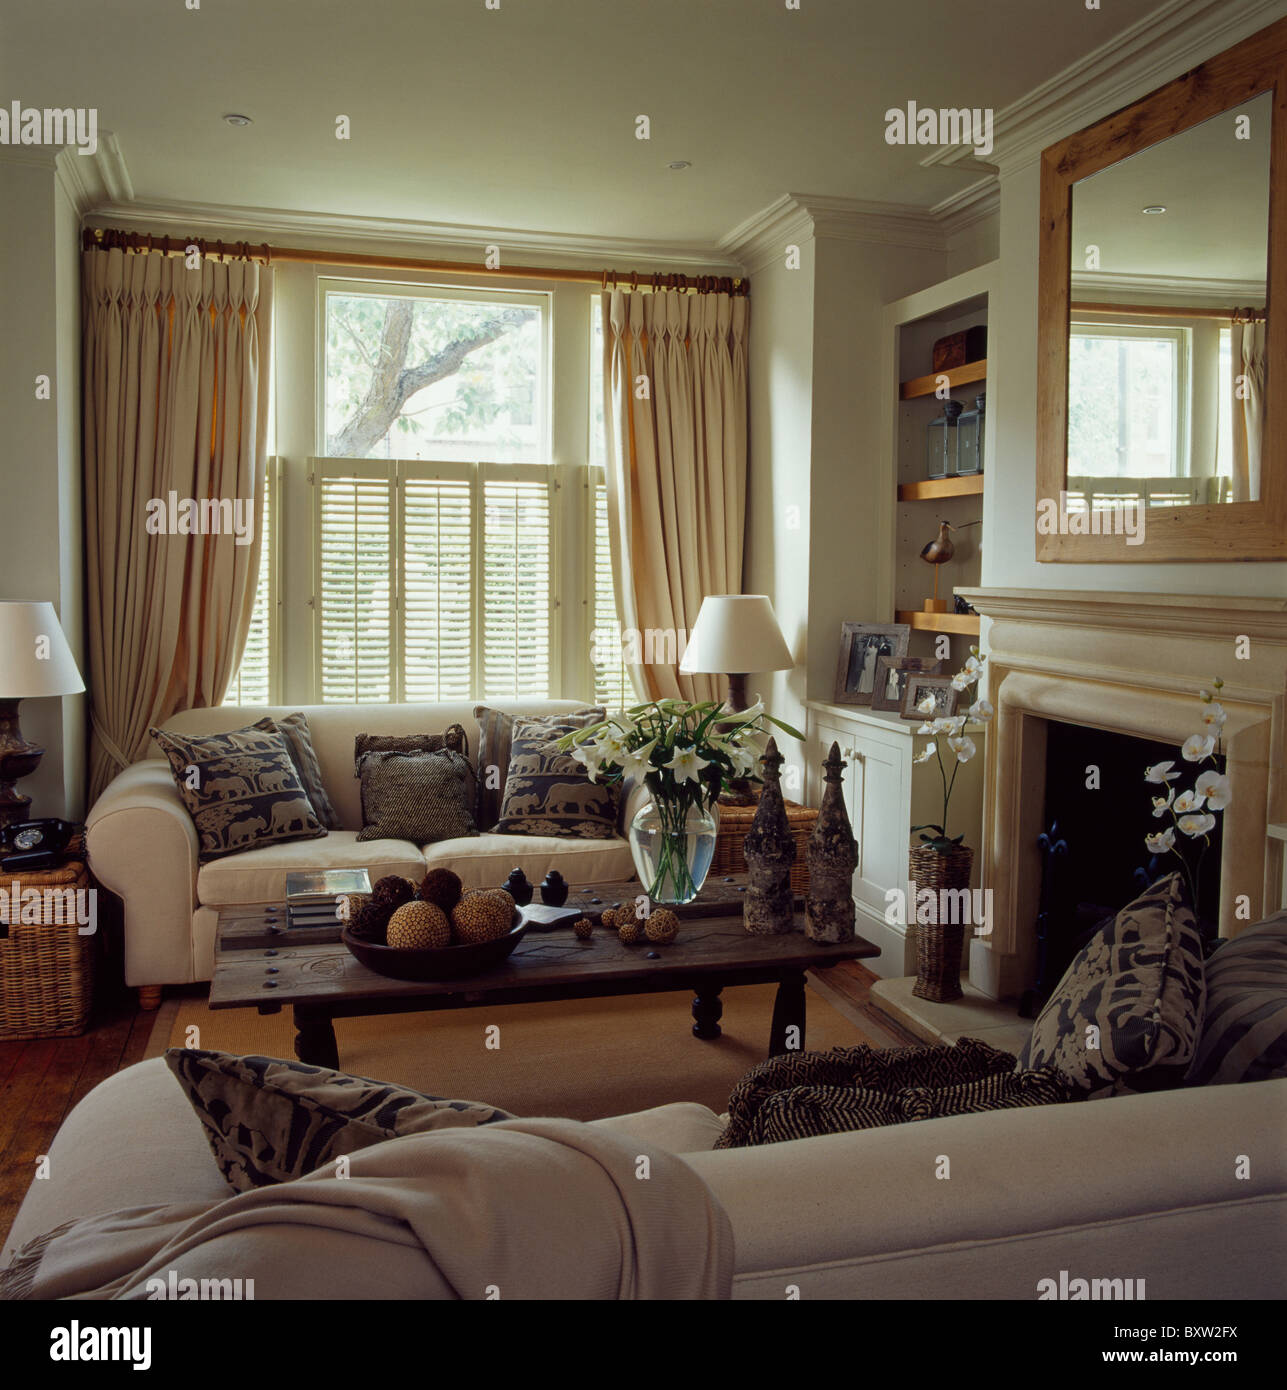 Cream Sofas In Townhouse Living Room With Cream Curtains